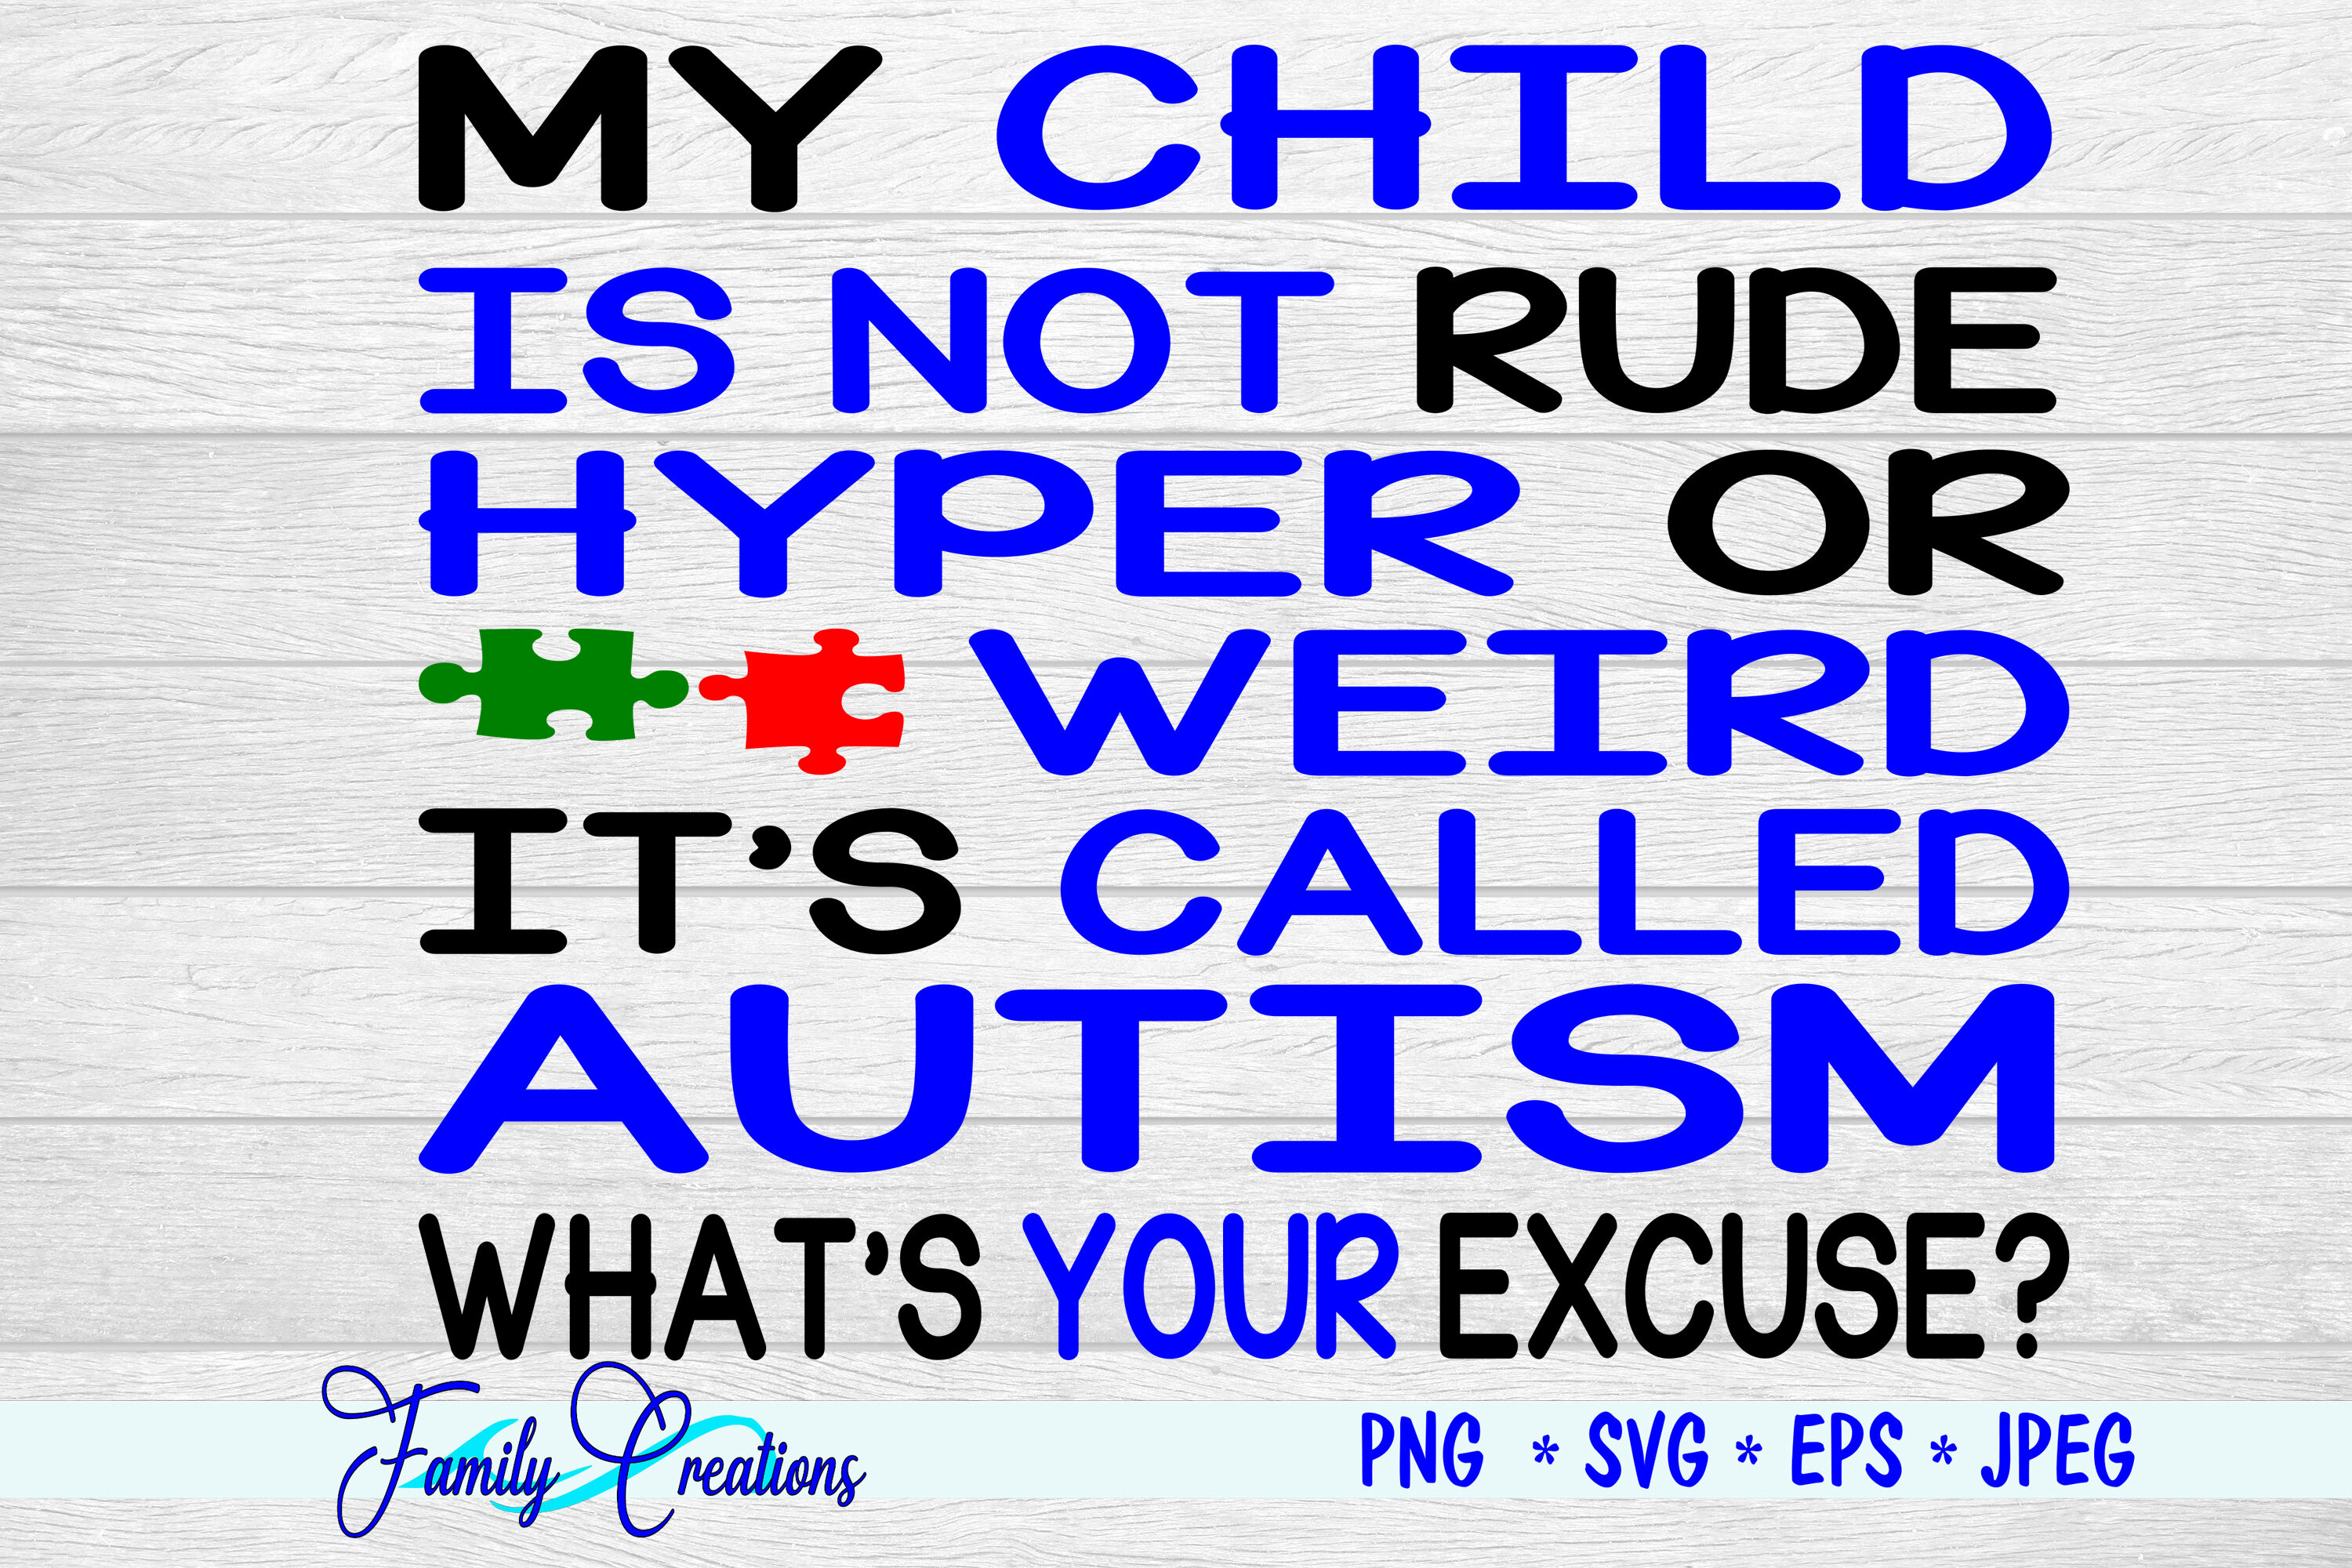 My Child Is Not Rude Hyper Or Weird It S Called Autism By Family